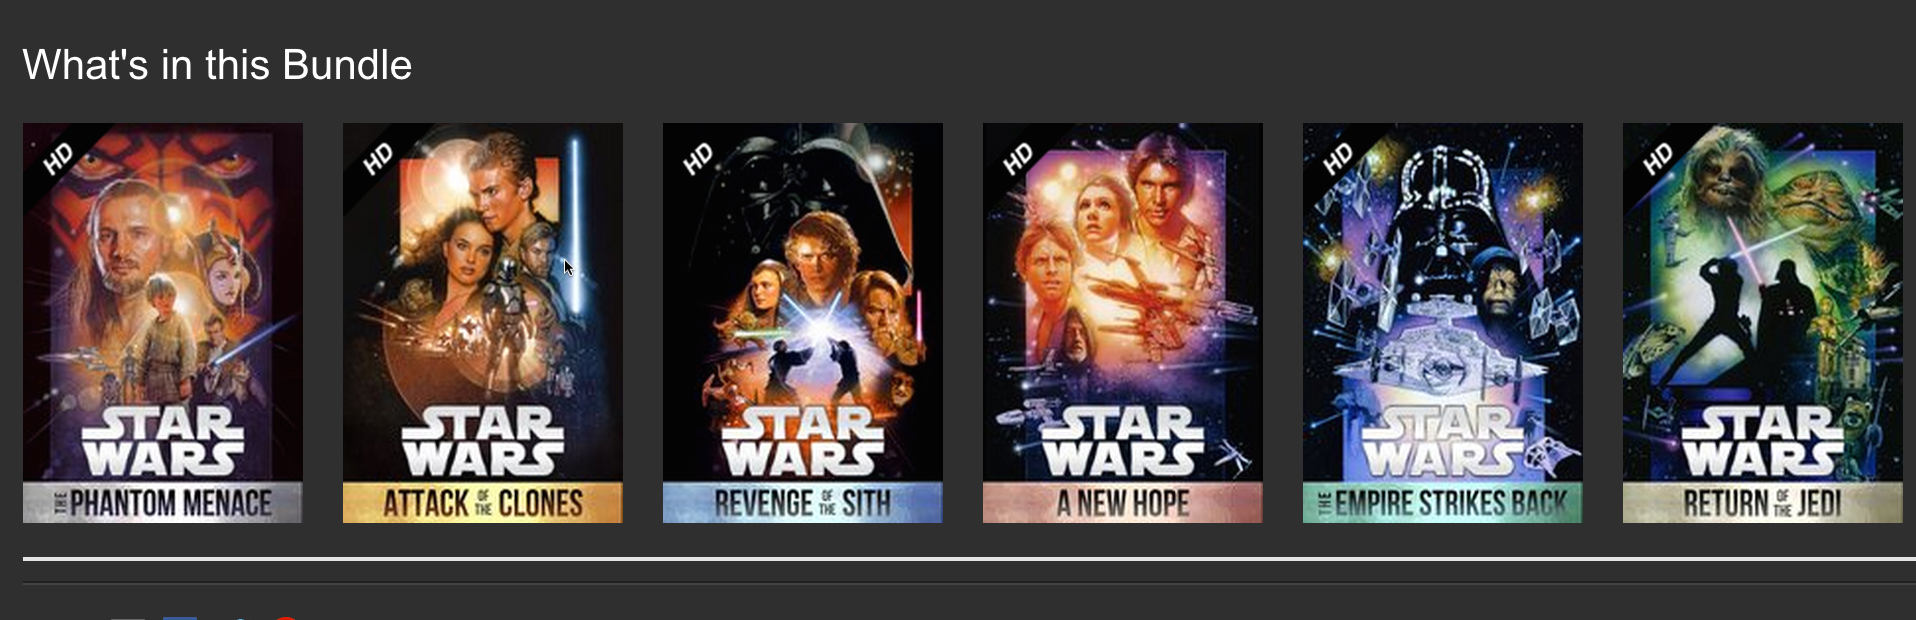 Star Wars Films To Finally Become Digital Downloads